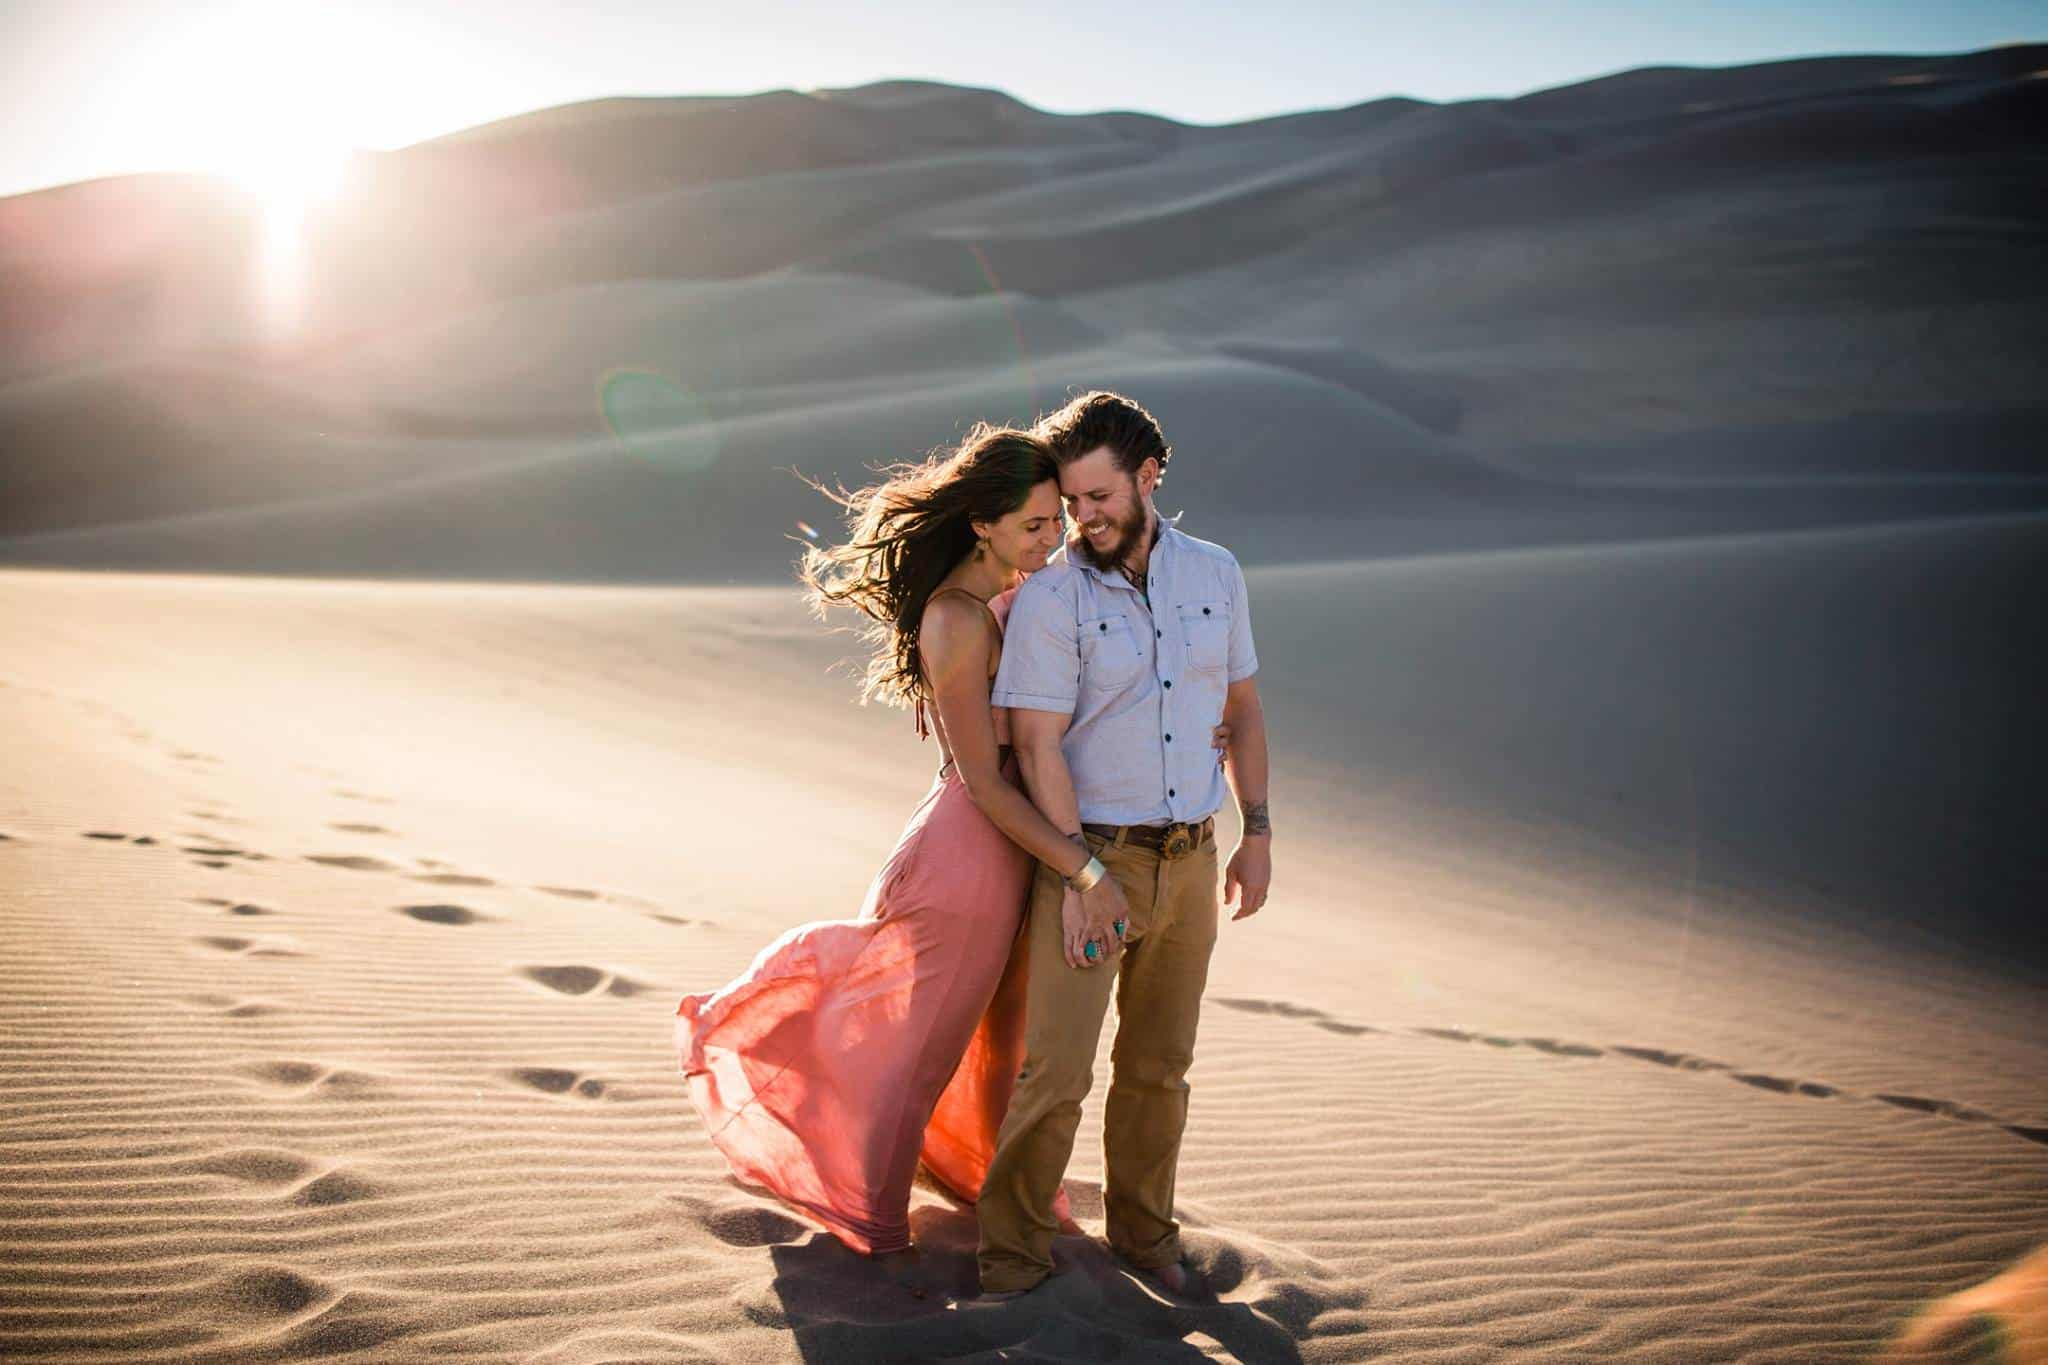 A woman embracing her man in the desert at sunset